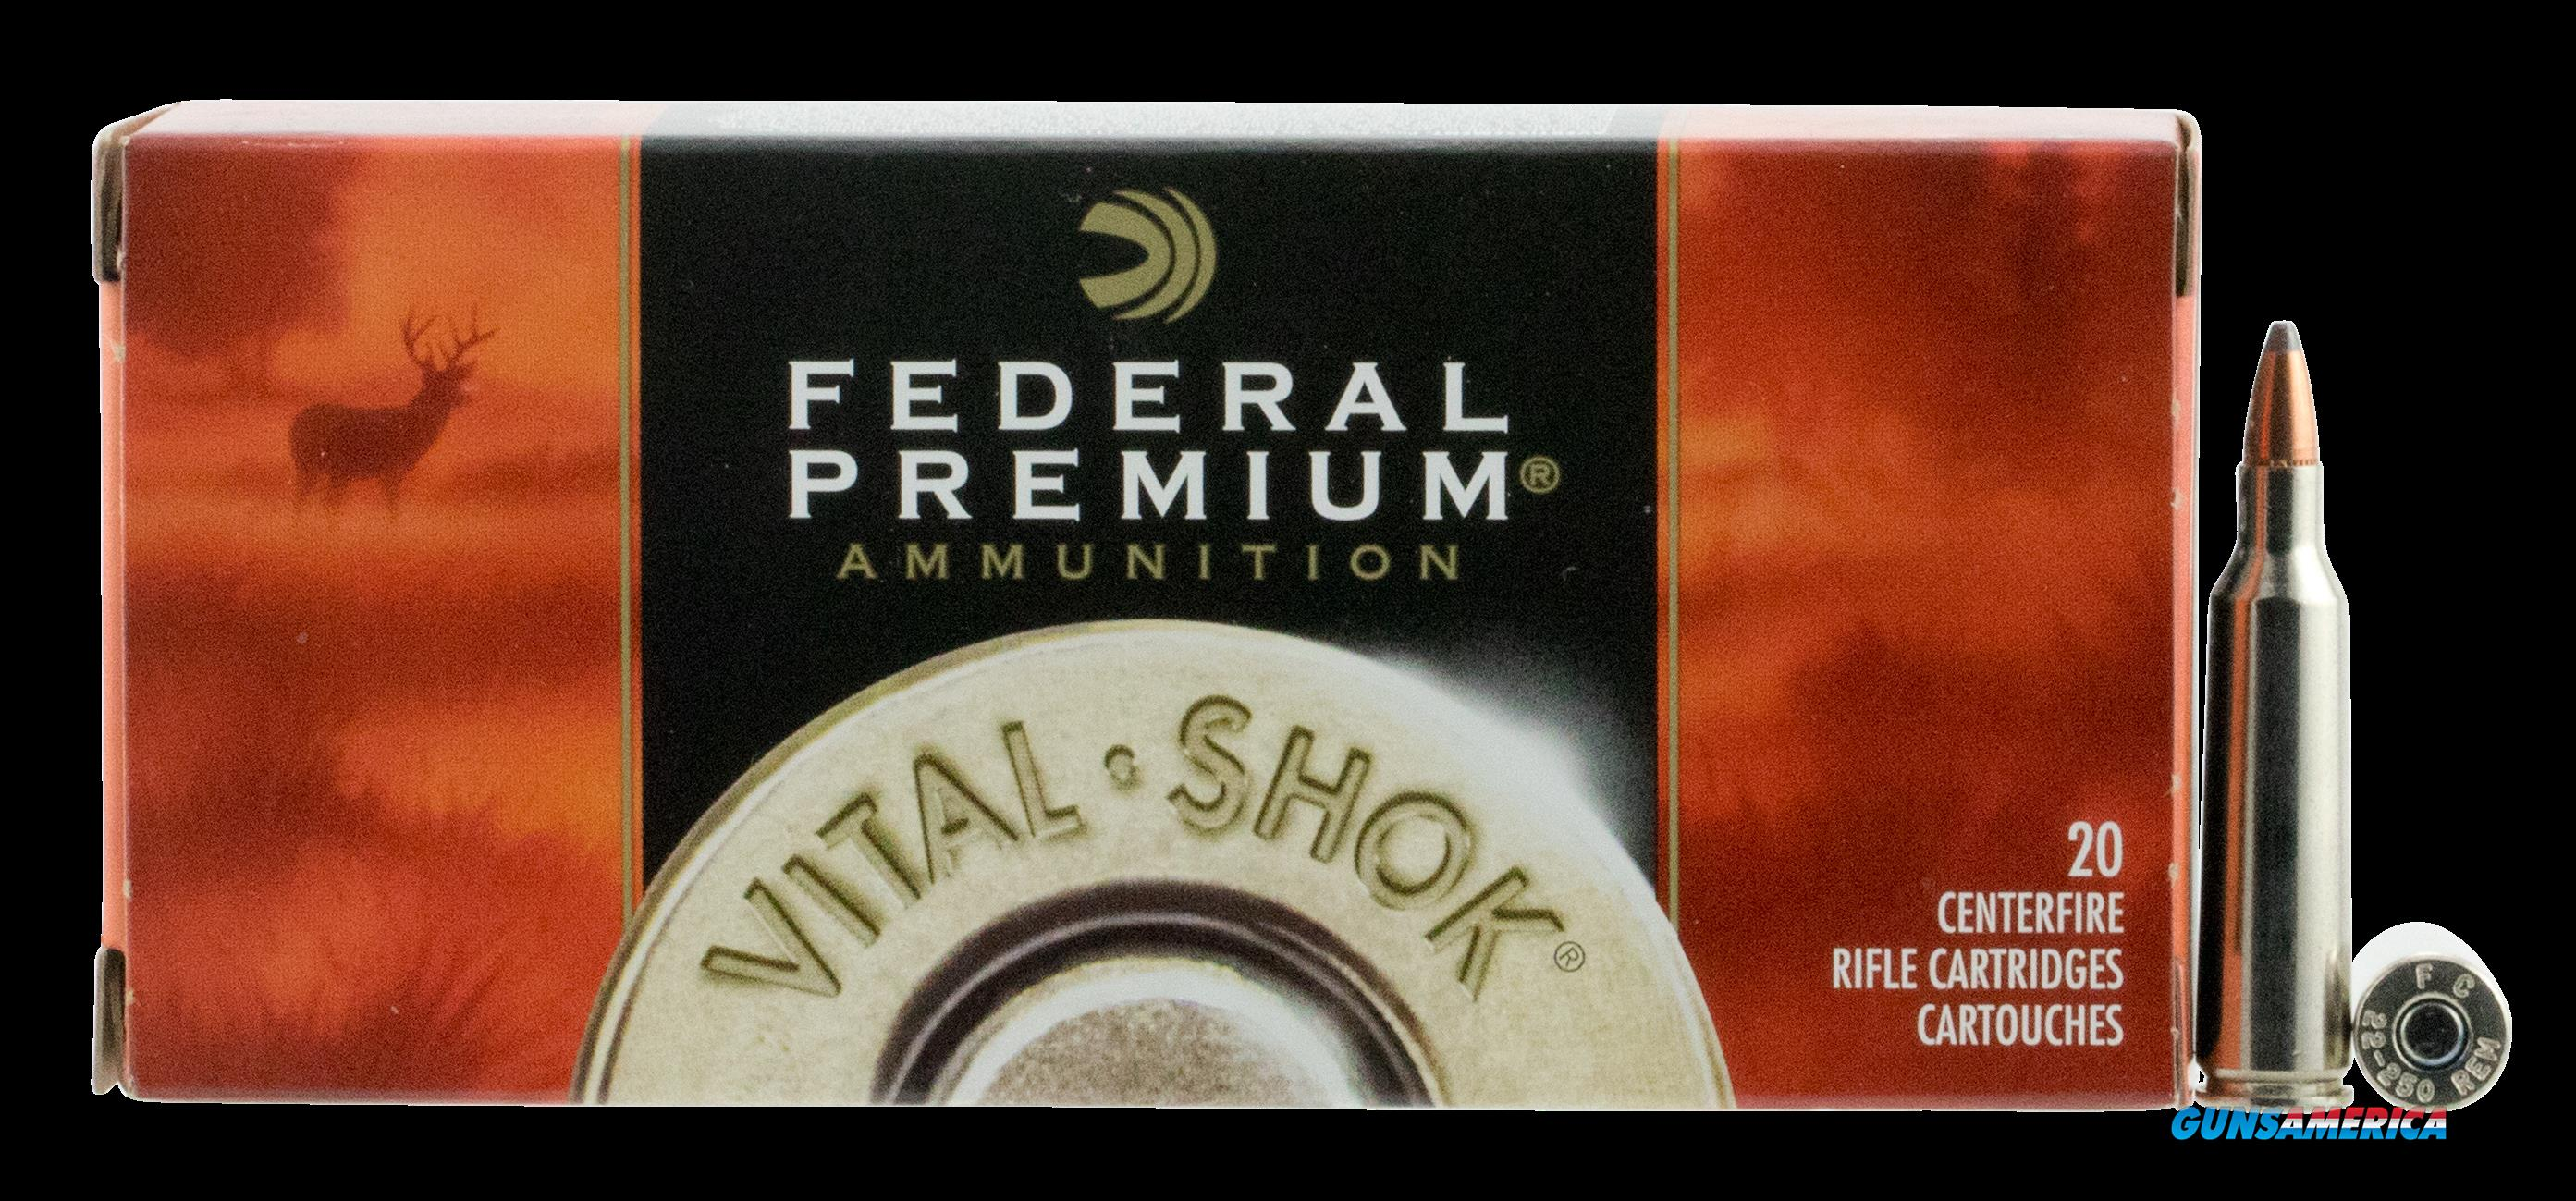 Federal Premium, Fed P22250g    22250   60 Np          20-10  Guns > Pistols > 1911 Pistol Copies (non-Colt)